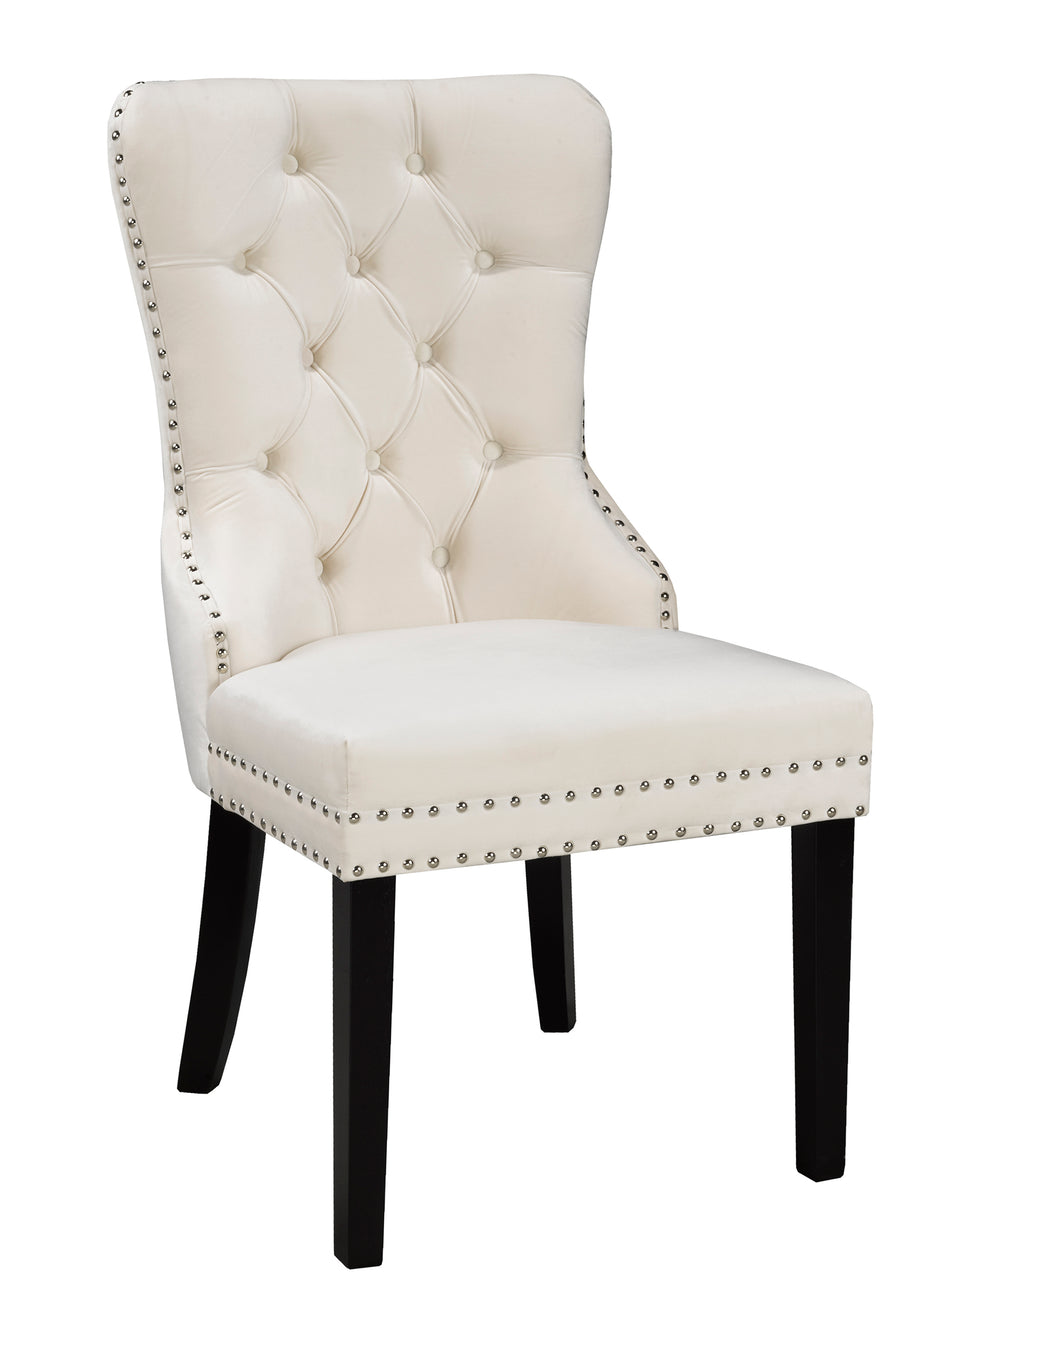 Verona Dining Chair - Cream Velvet | Candace and Basil Furniture